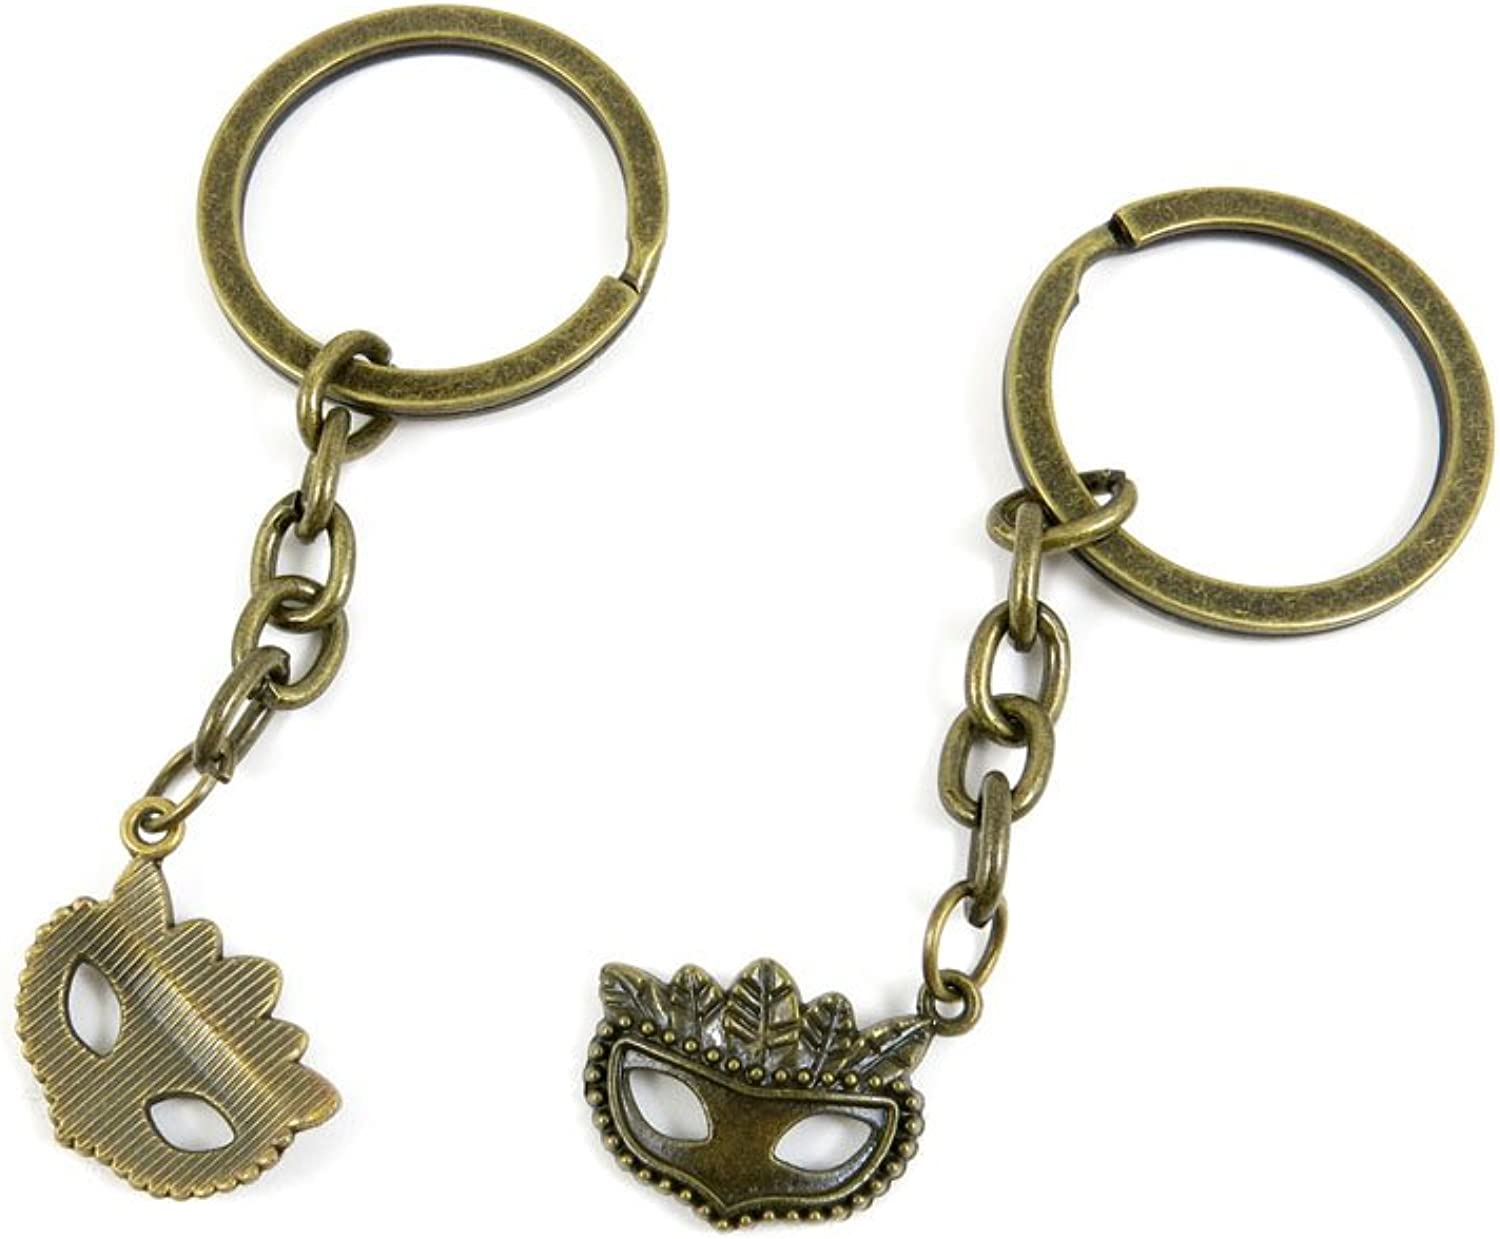 190 Pieces Fashion Jewelry Keyring Keychain Door Car Key Tag Ring Chain Supplier Supply Wholesale Bulk Lots O5WK8 Carnival Mask